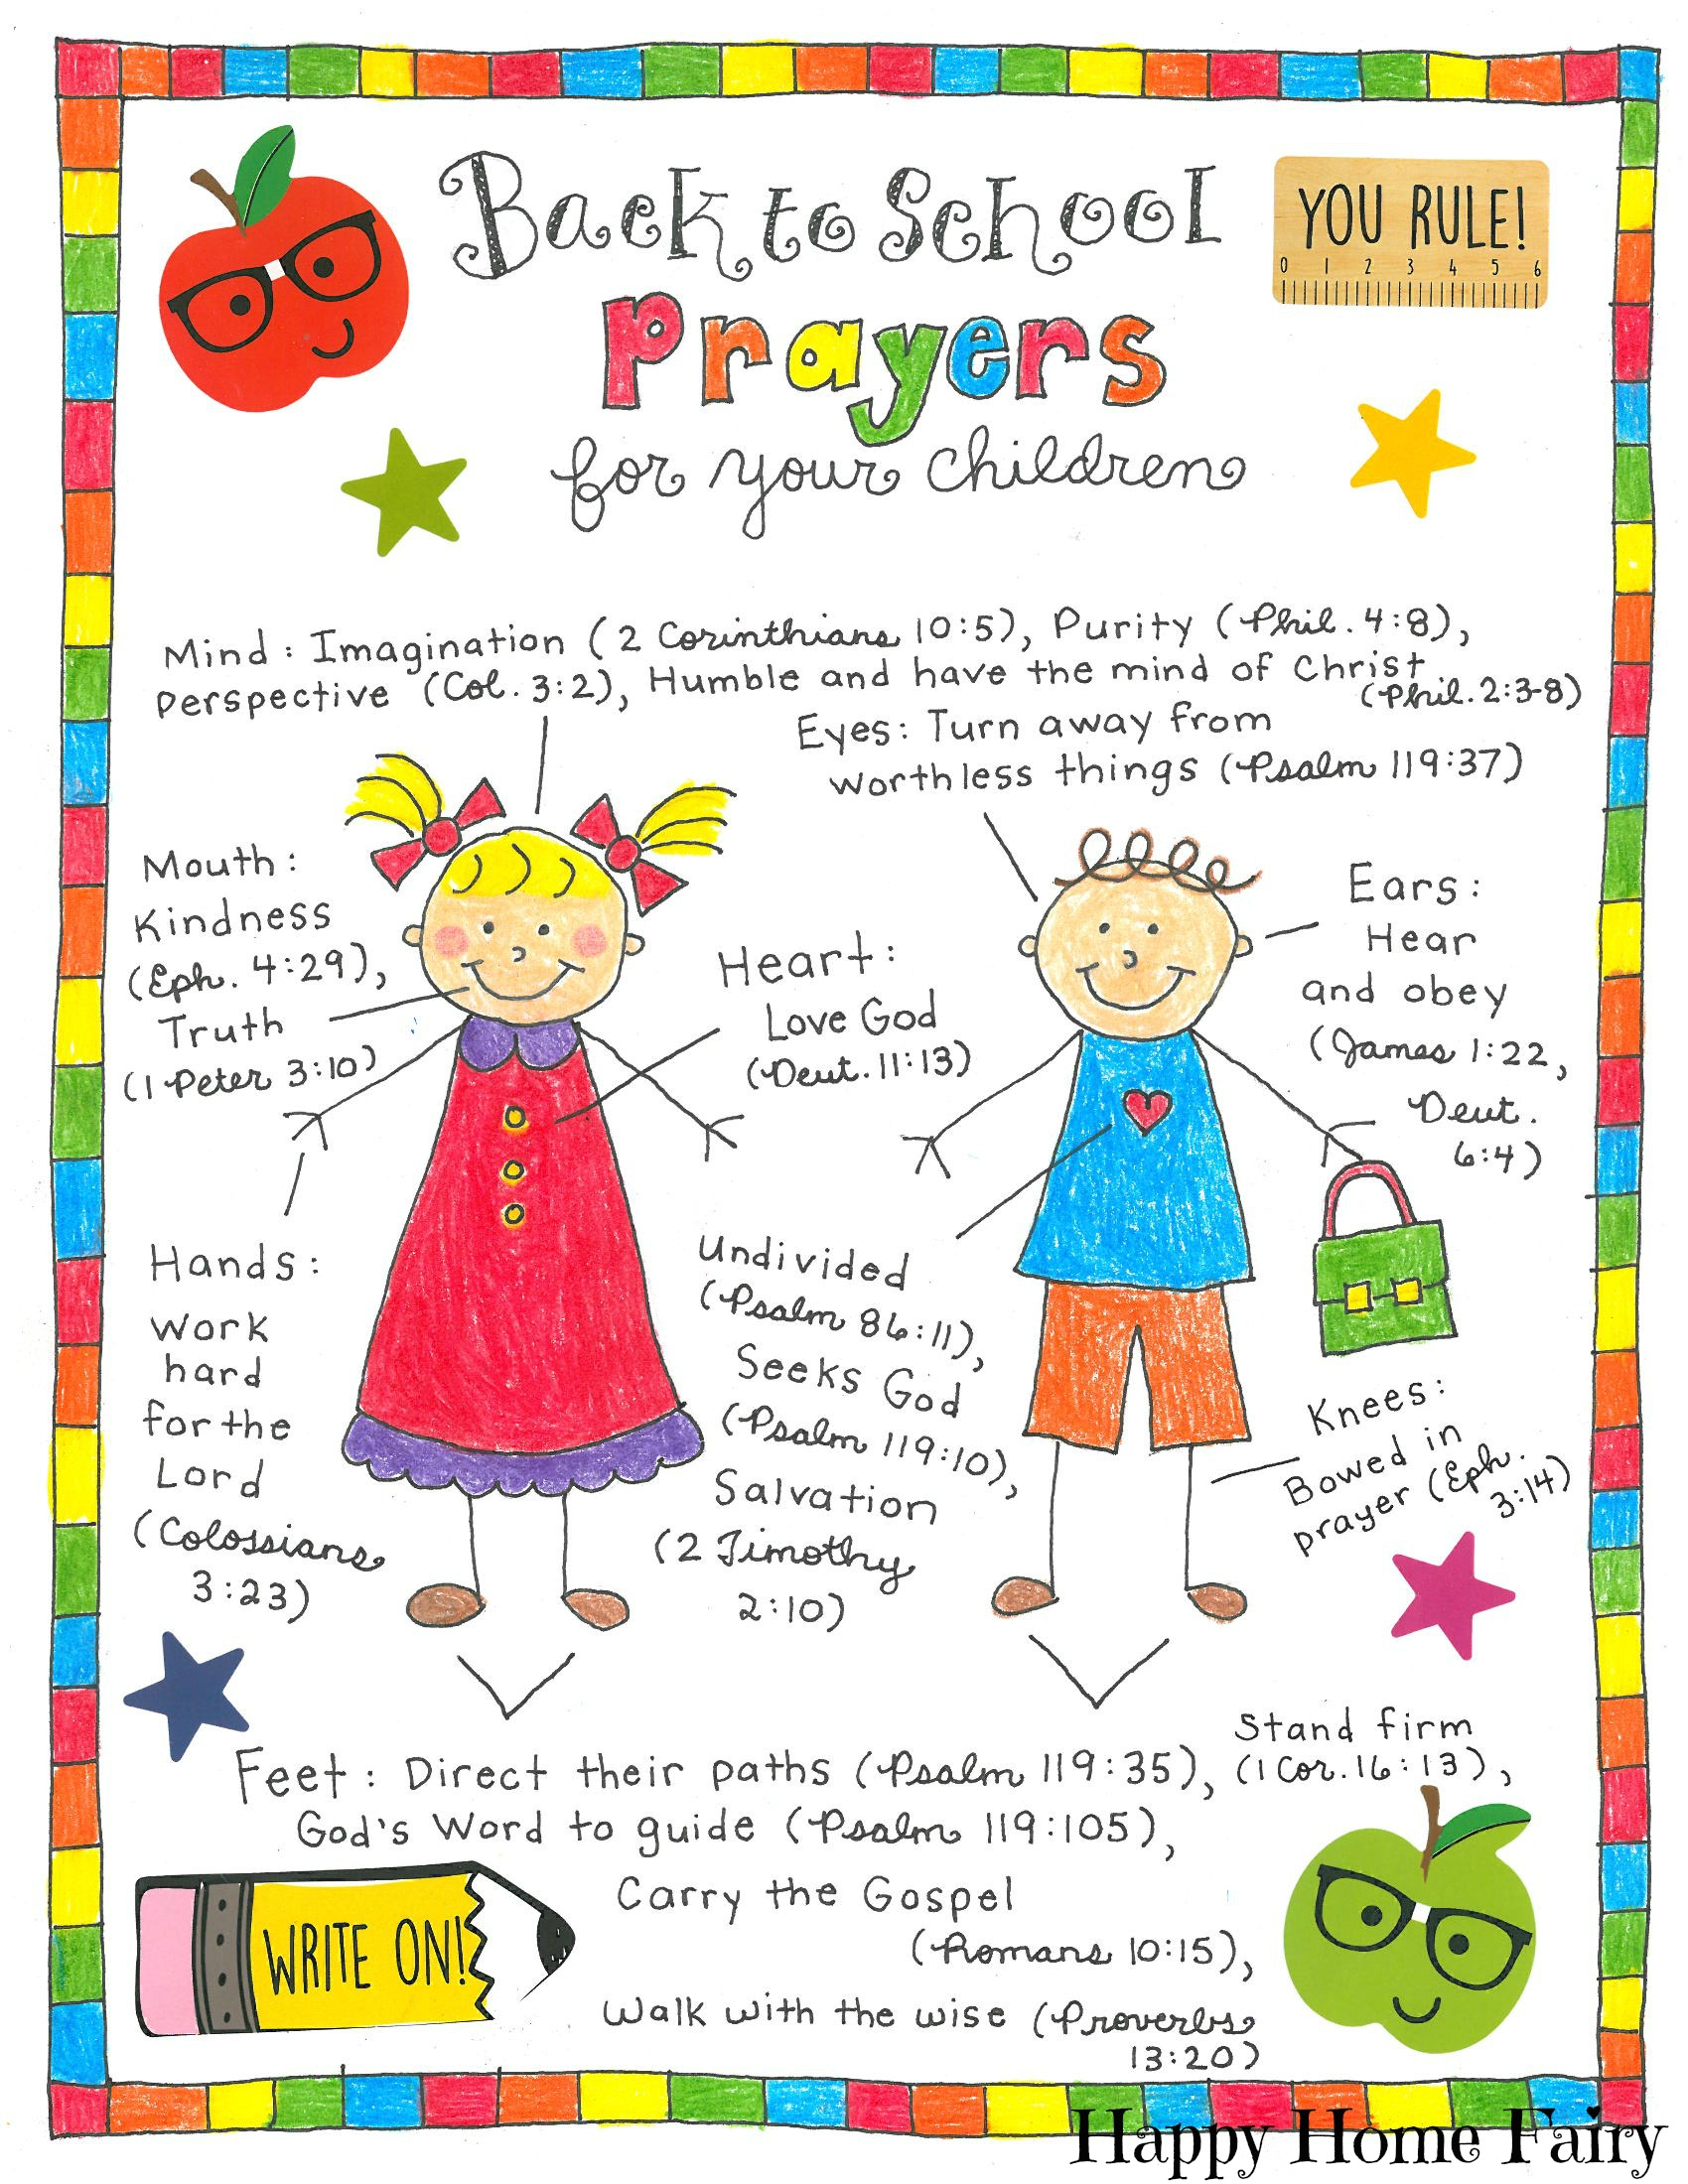 photo relating to Prayer Printable called Back again towards Faculty Prayers For Your Little ones - No cost Printable